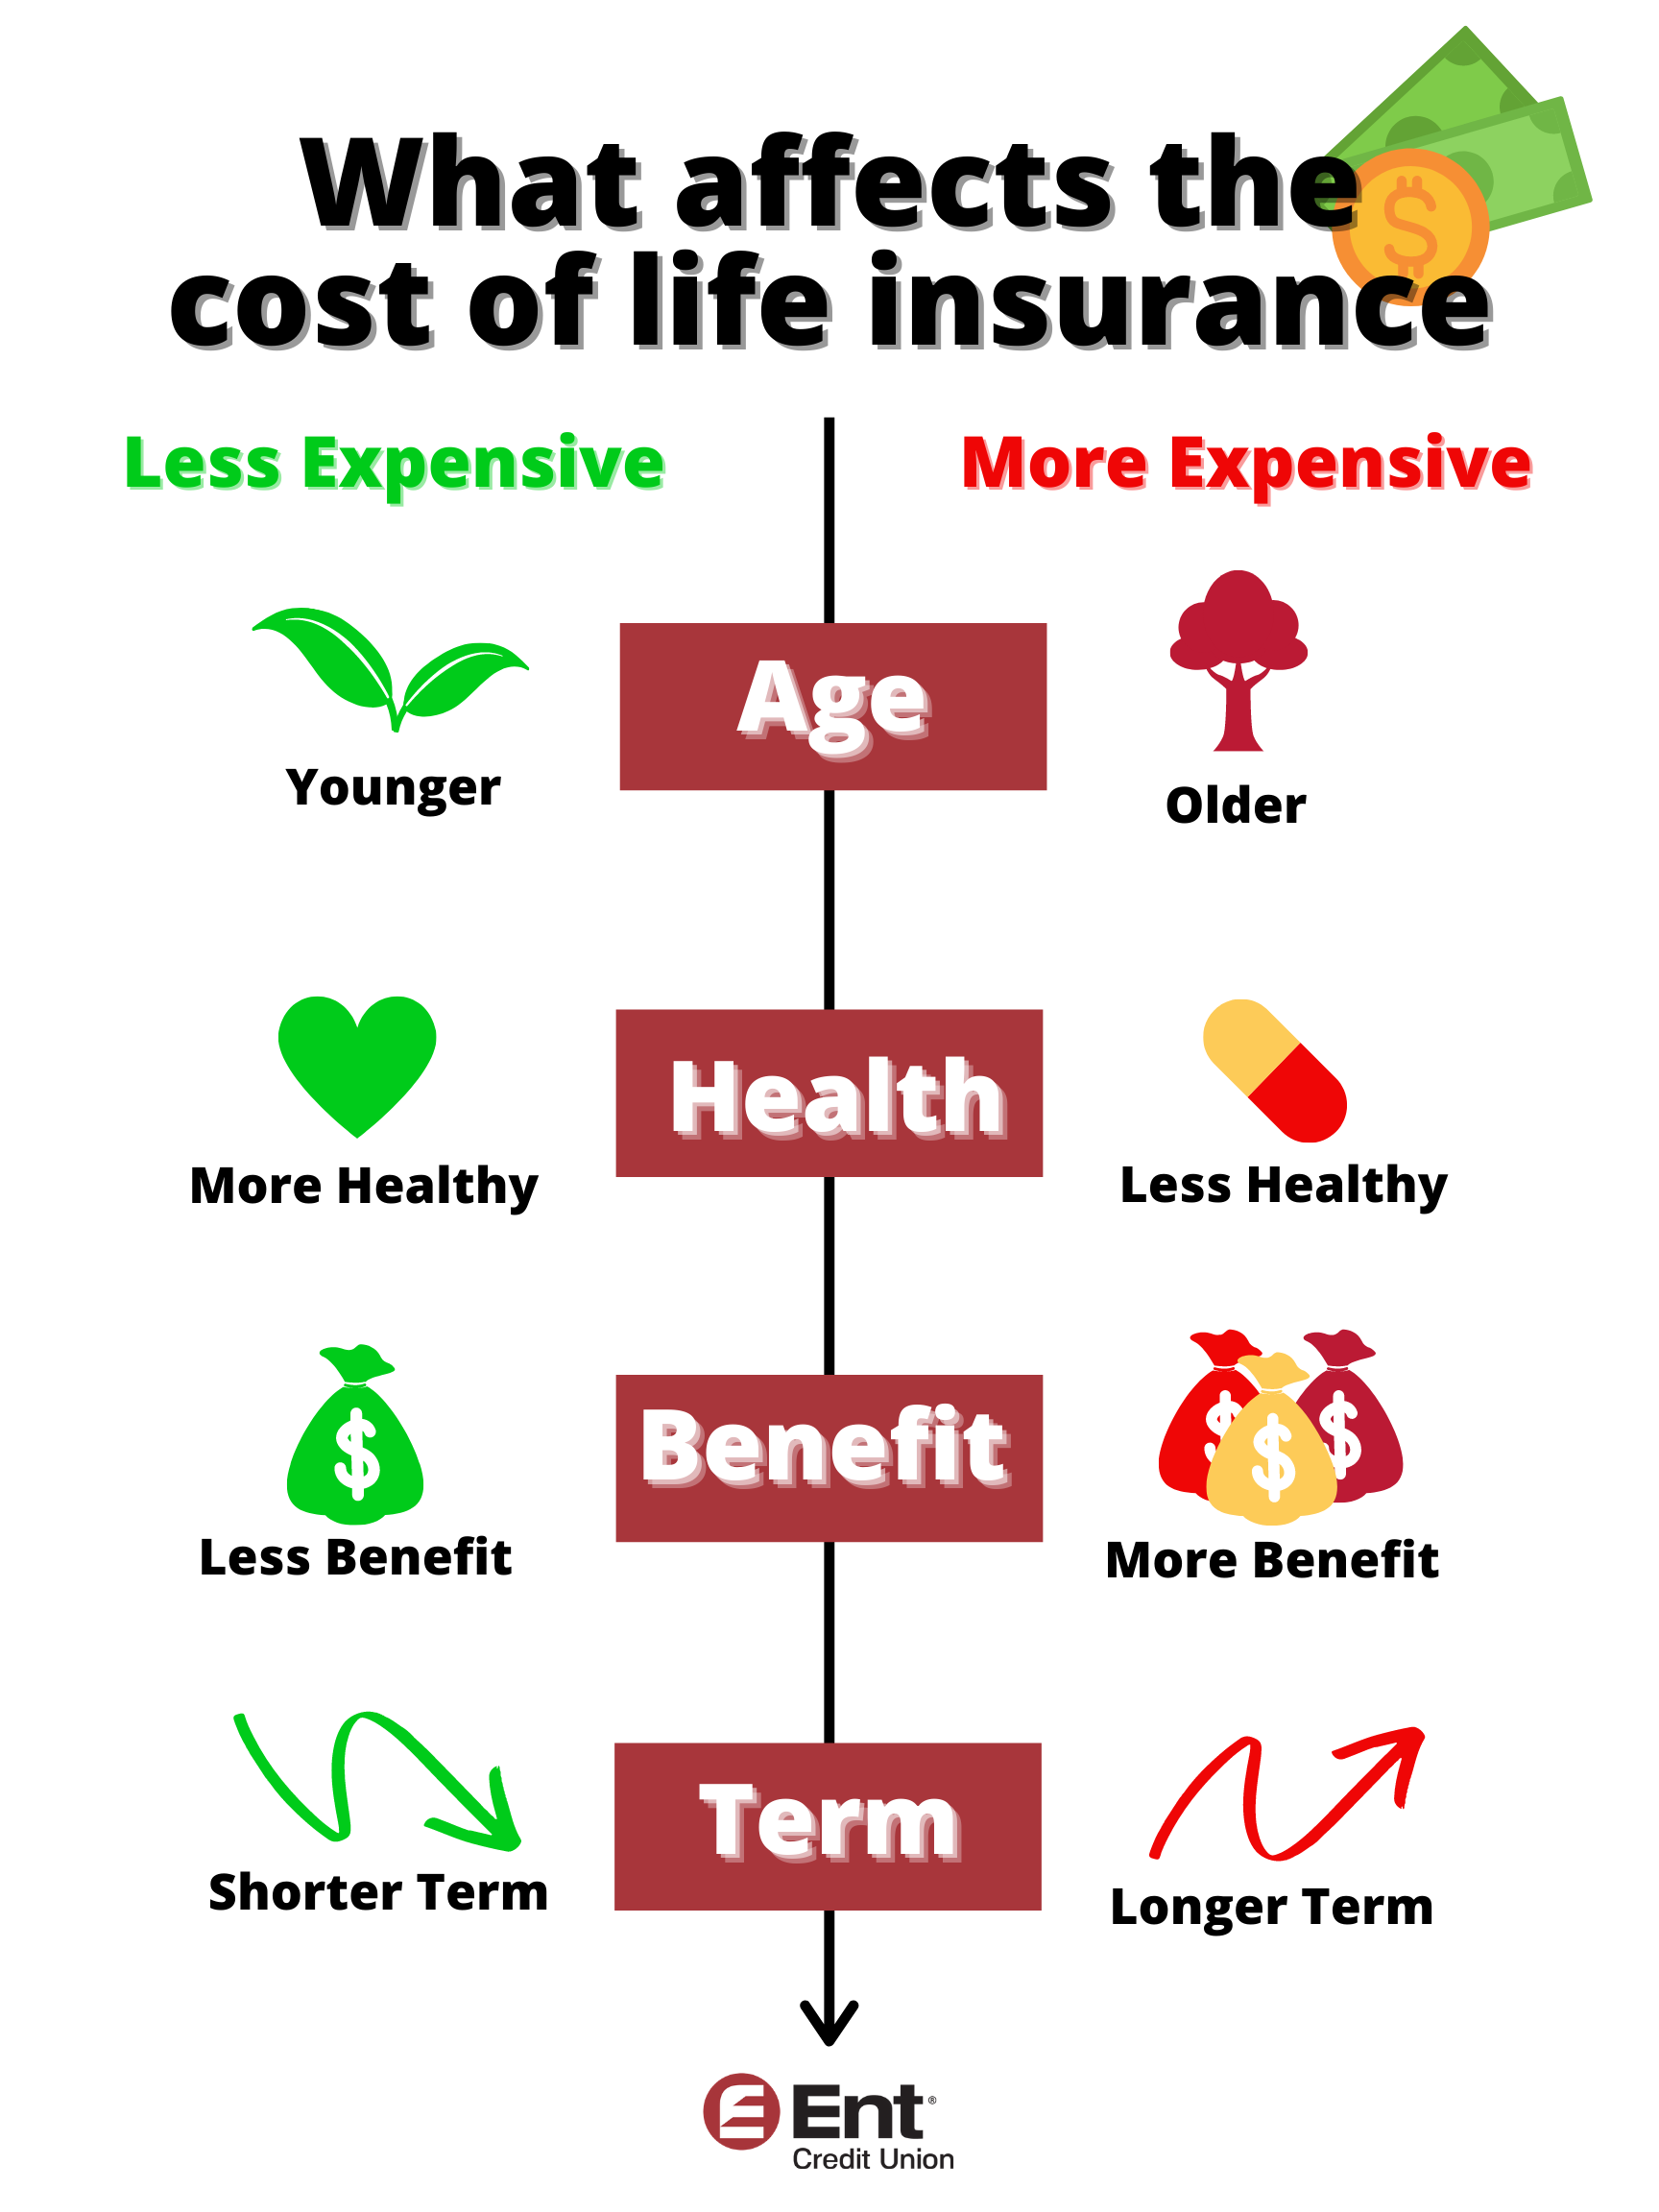 Infographic showing the different factors that affect the cost of life insurance: age, health, benefit amount and  term legnth.